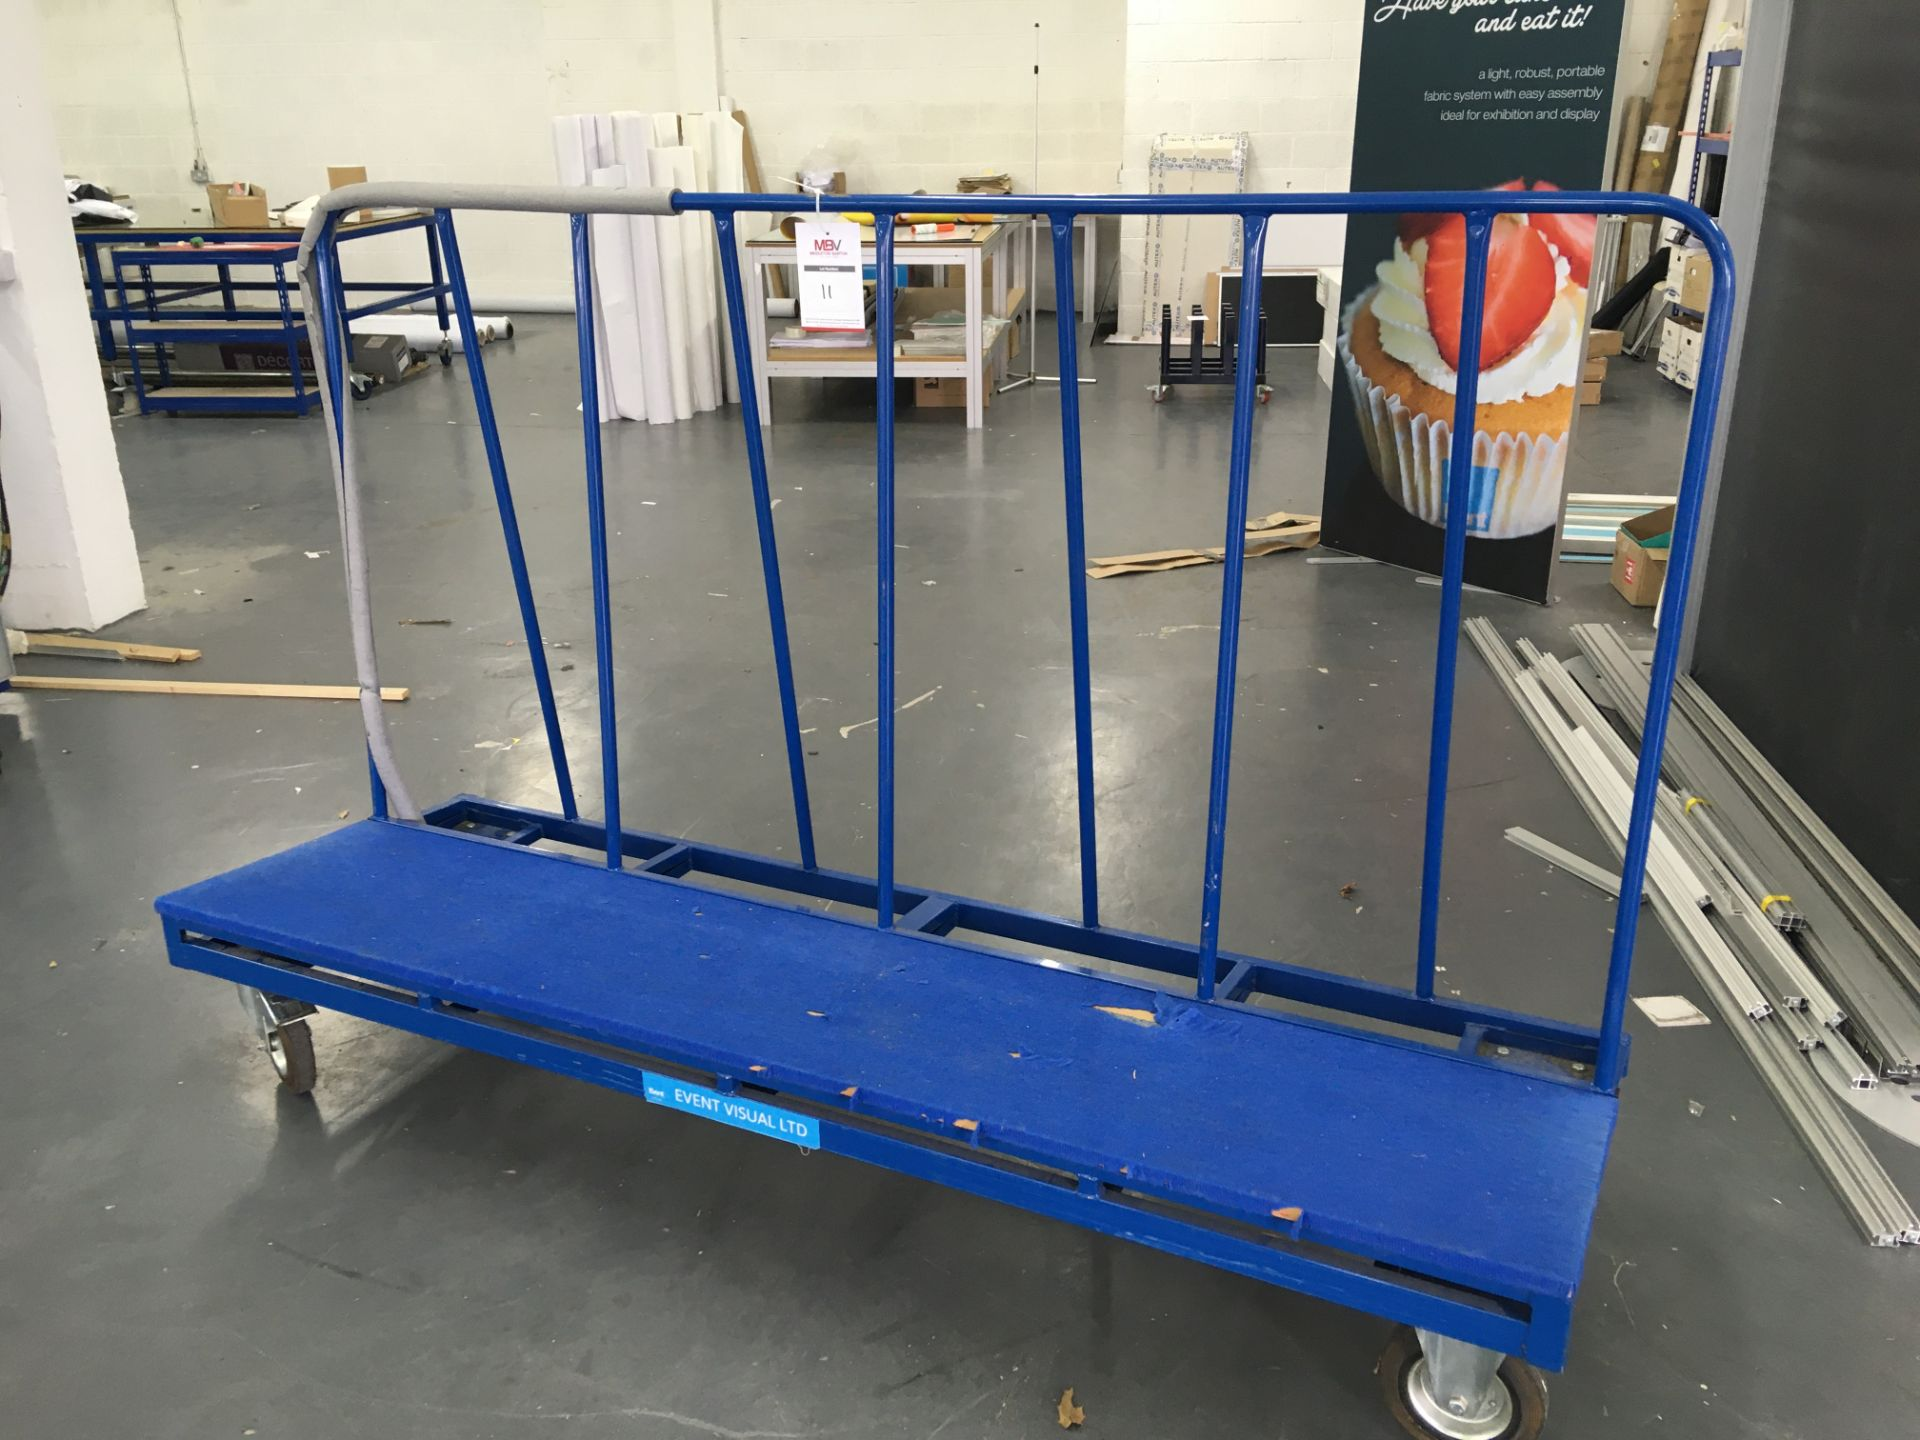 Large, wheeled Sheet / Glass / Board trolley (Length 2.25m; Height 1.2m)